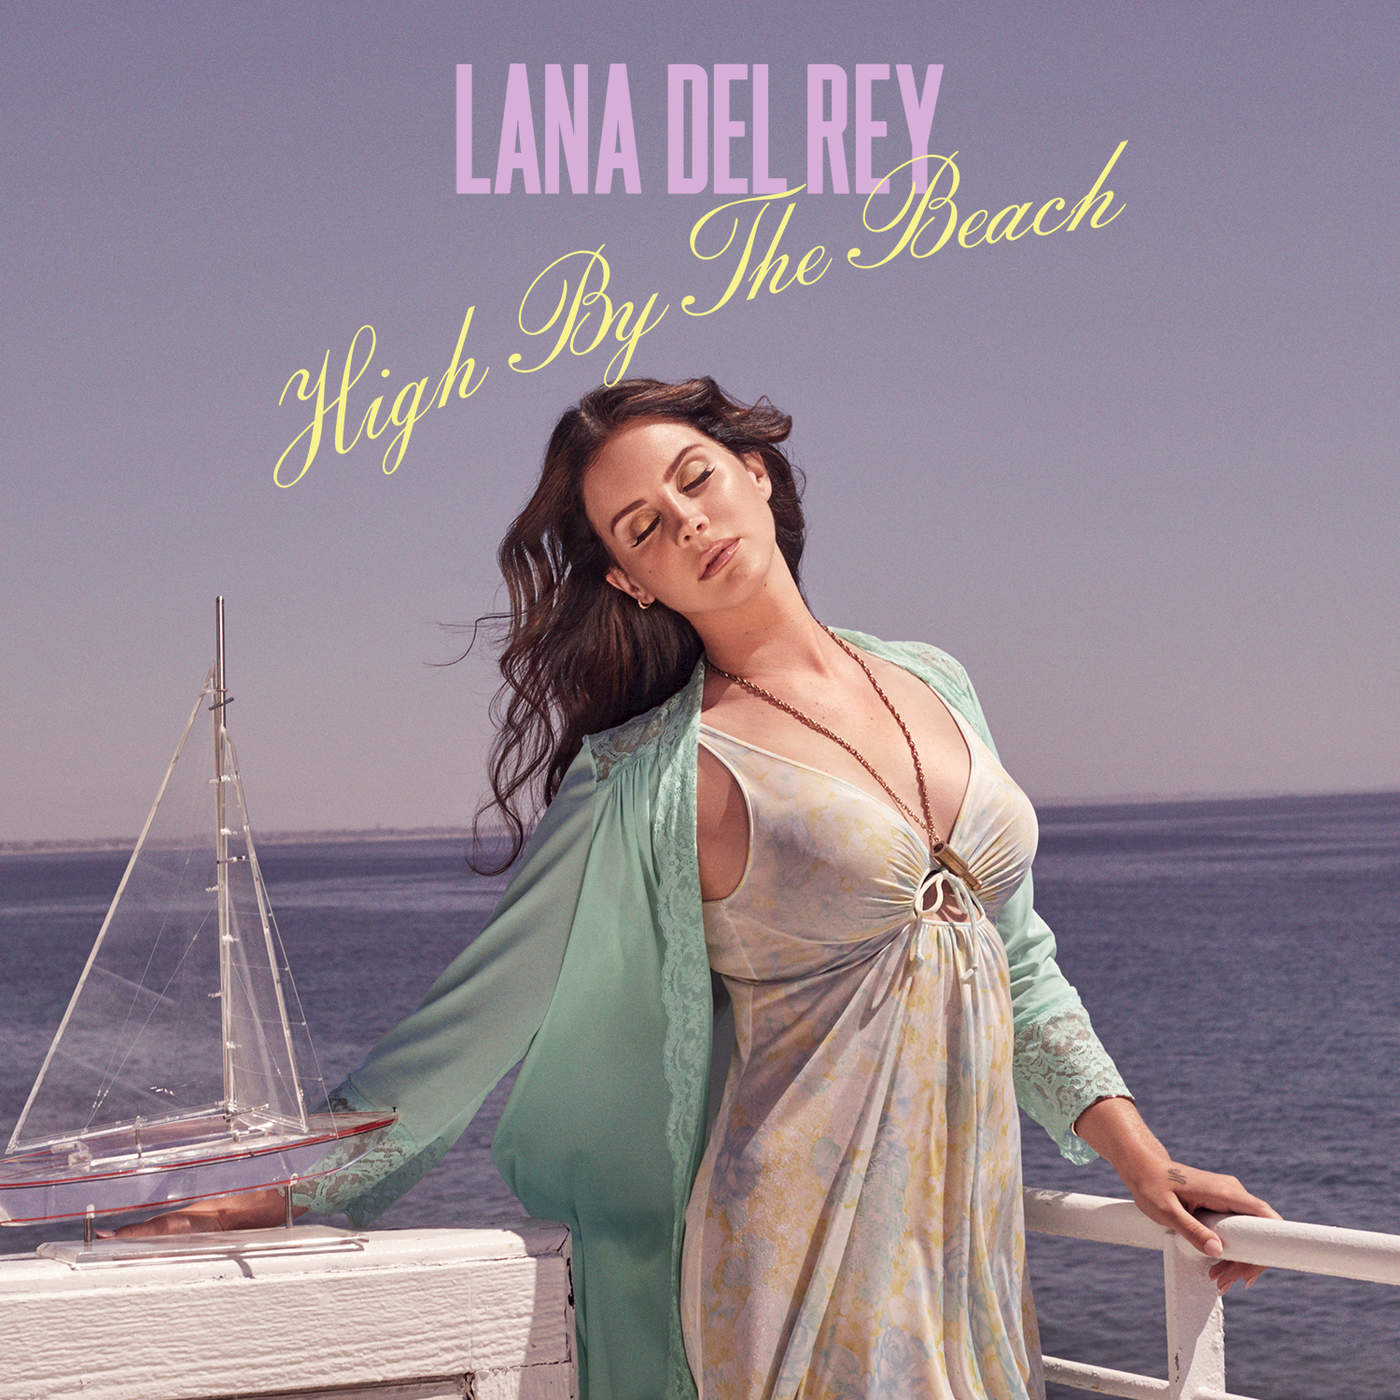 LANA DEL REY HIGH BY THE BEACH VIDUTA REMIX СКАЧАТЬ БЕСПЛАТНО